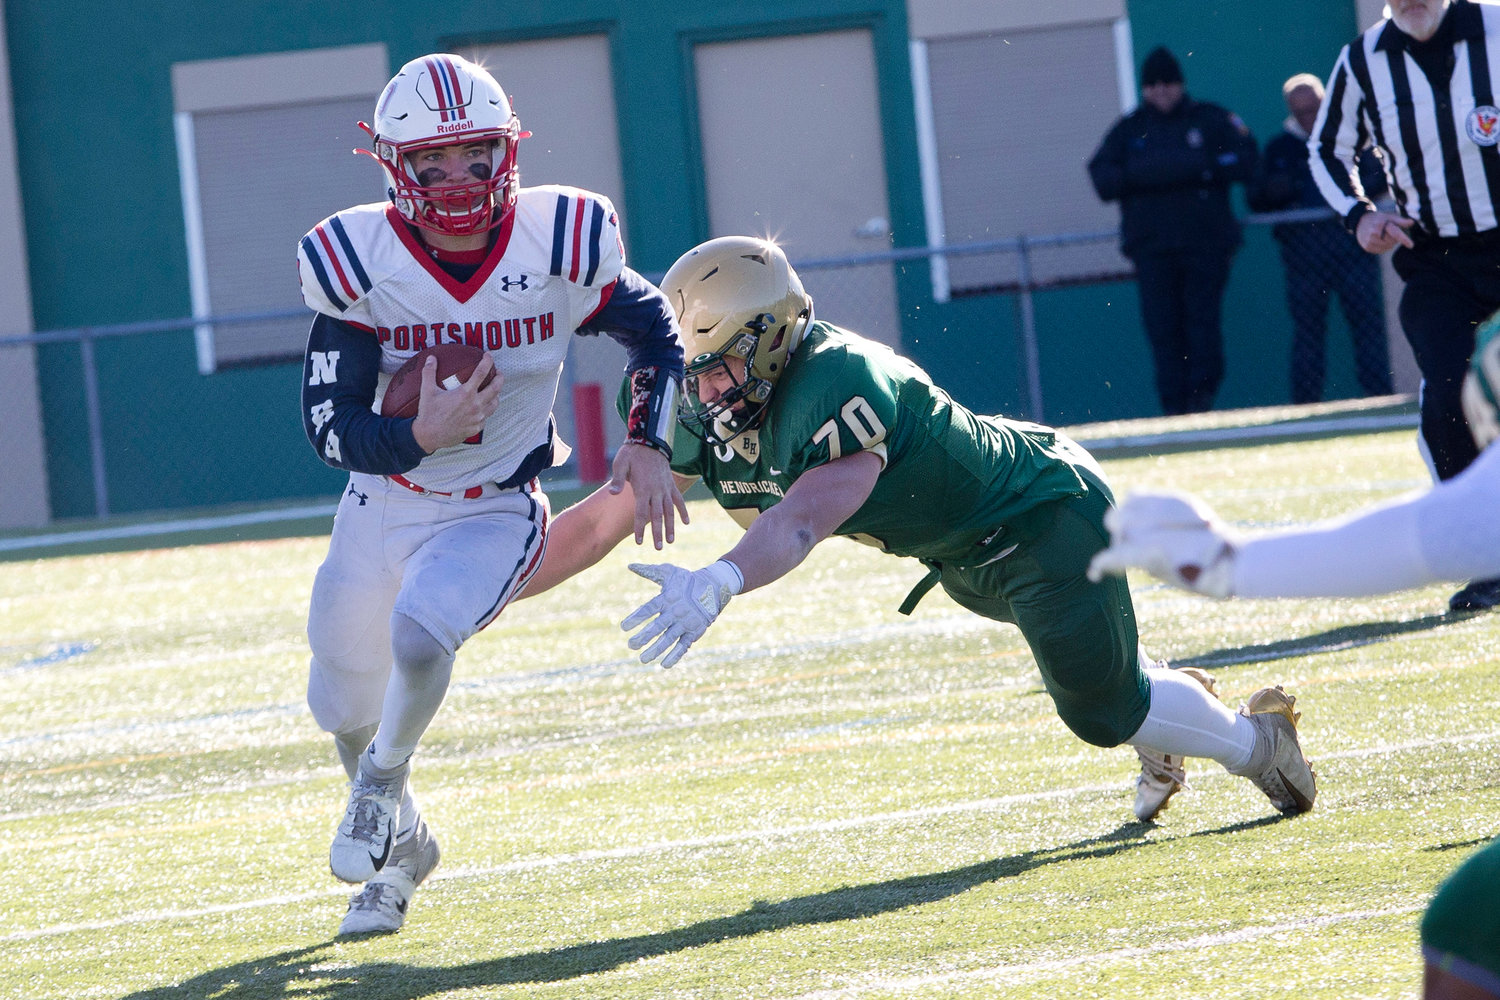 Benny Hurd runs past one Hendricken defender while confronted by another.